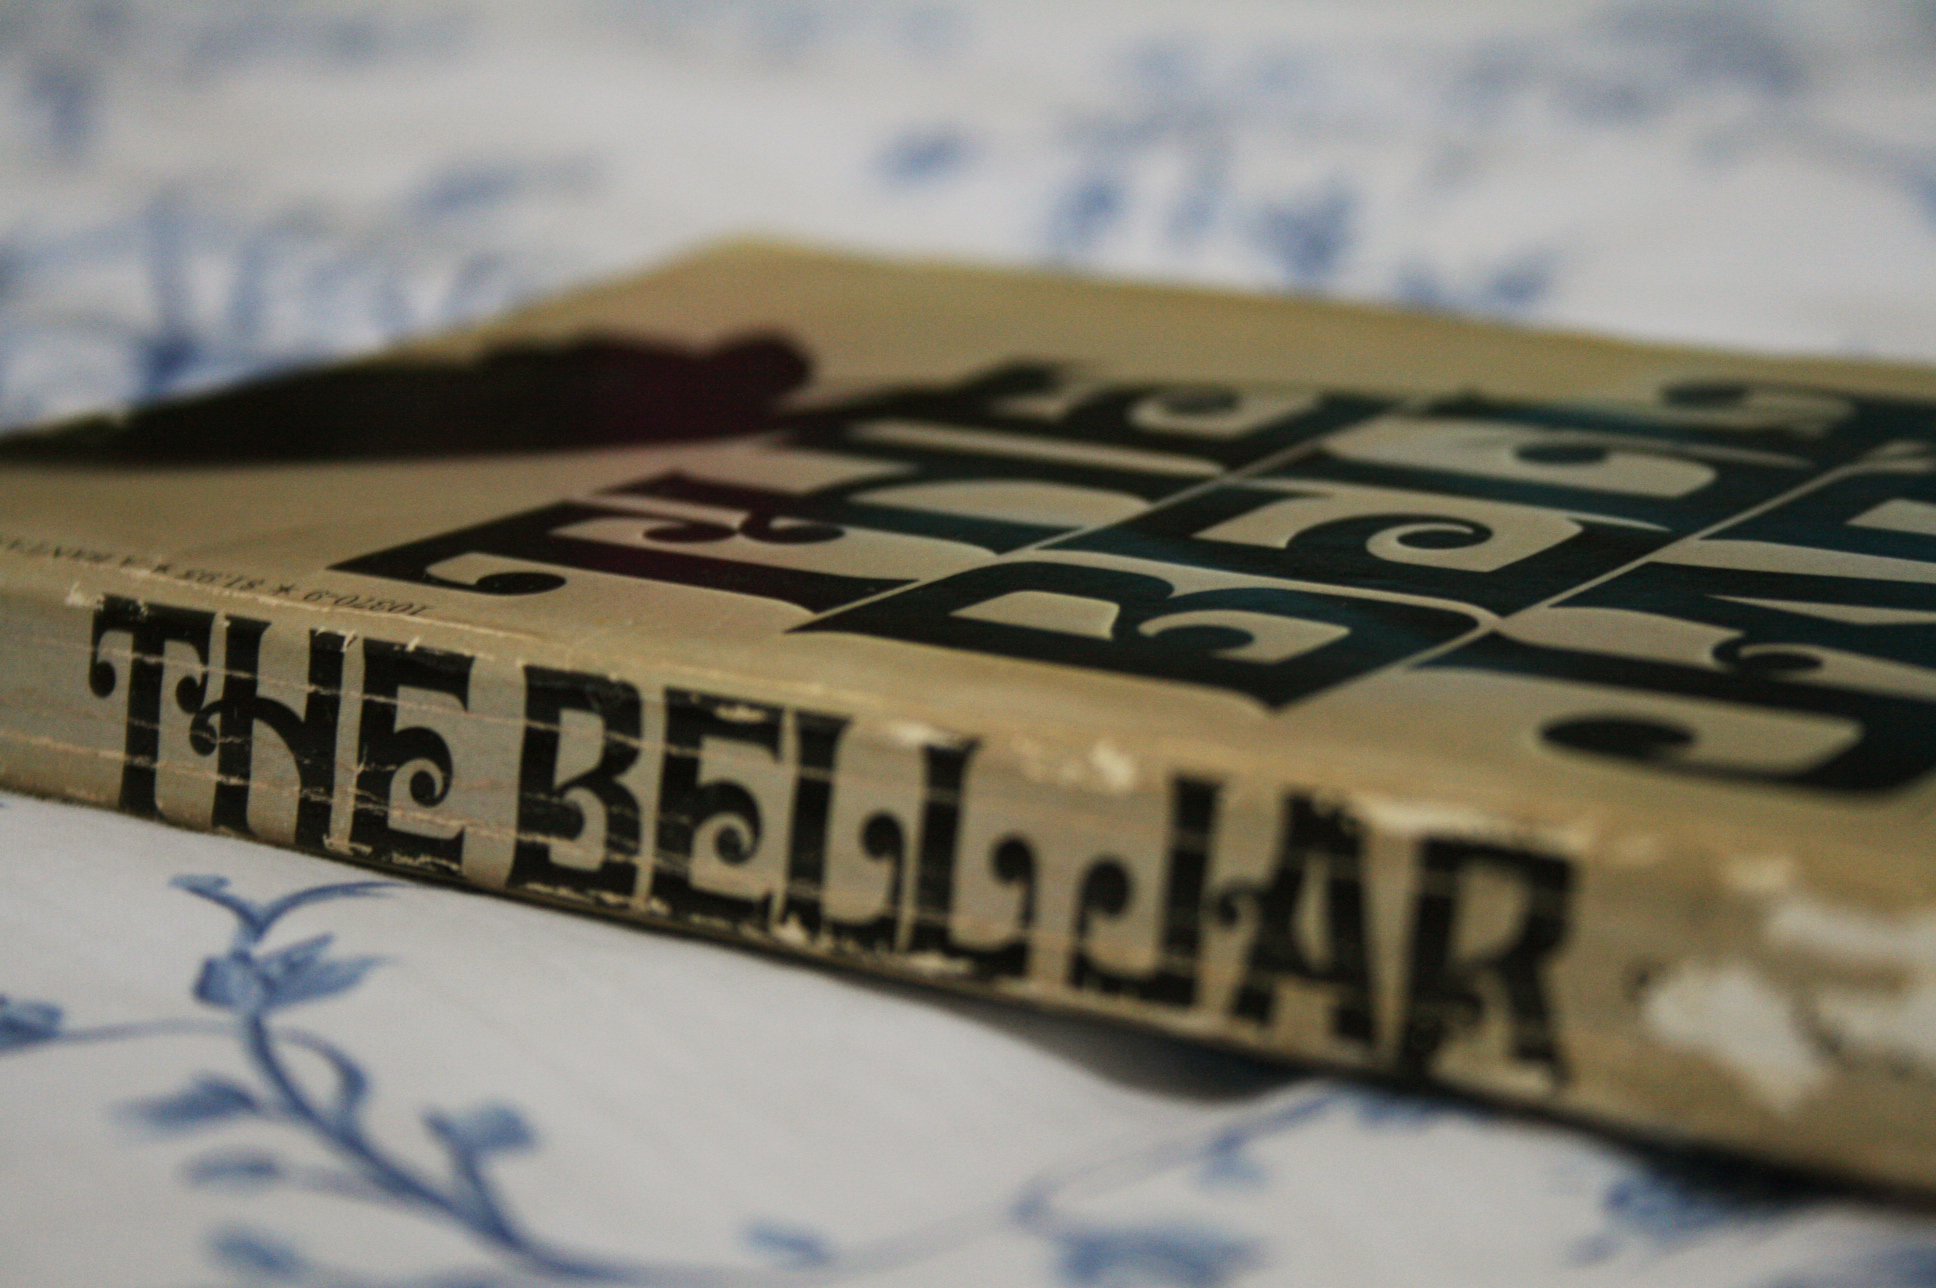 For the Love of Food in The Bell Jar